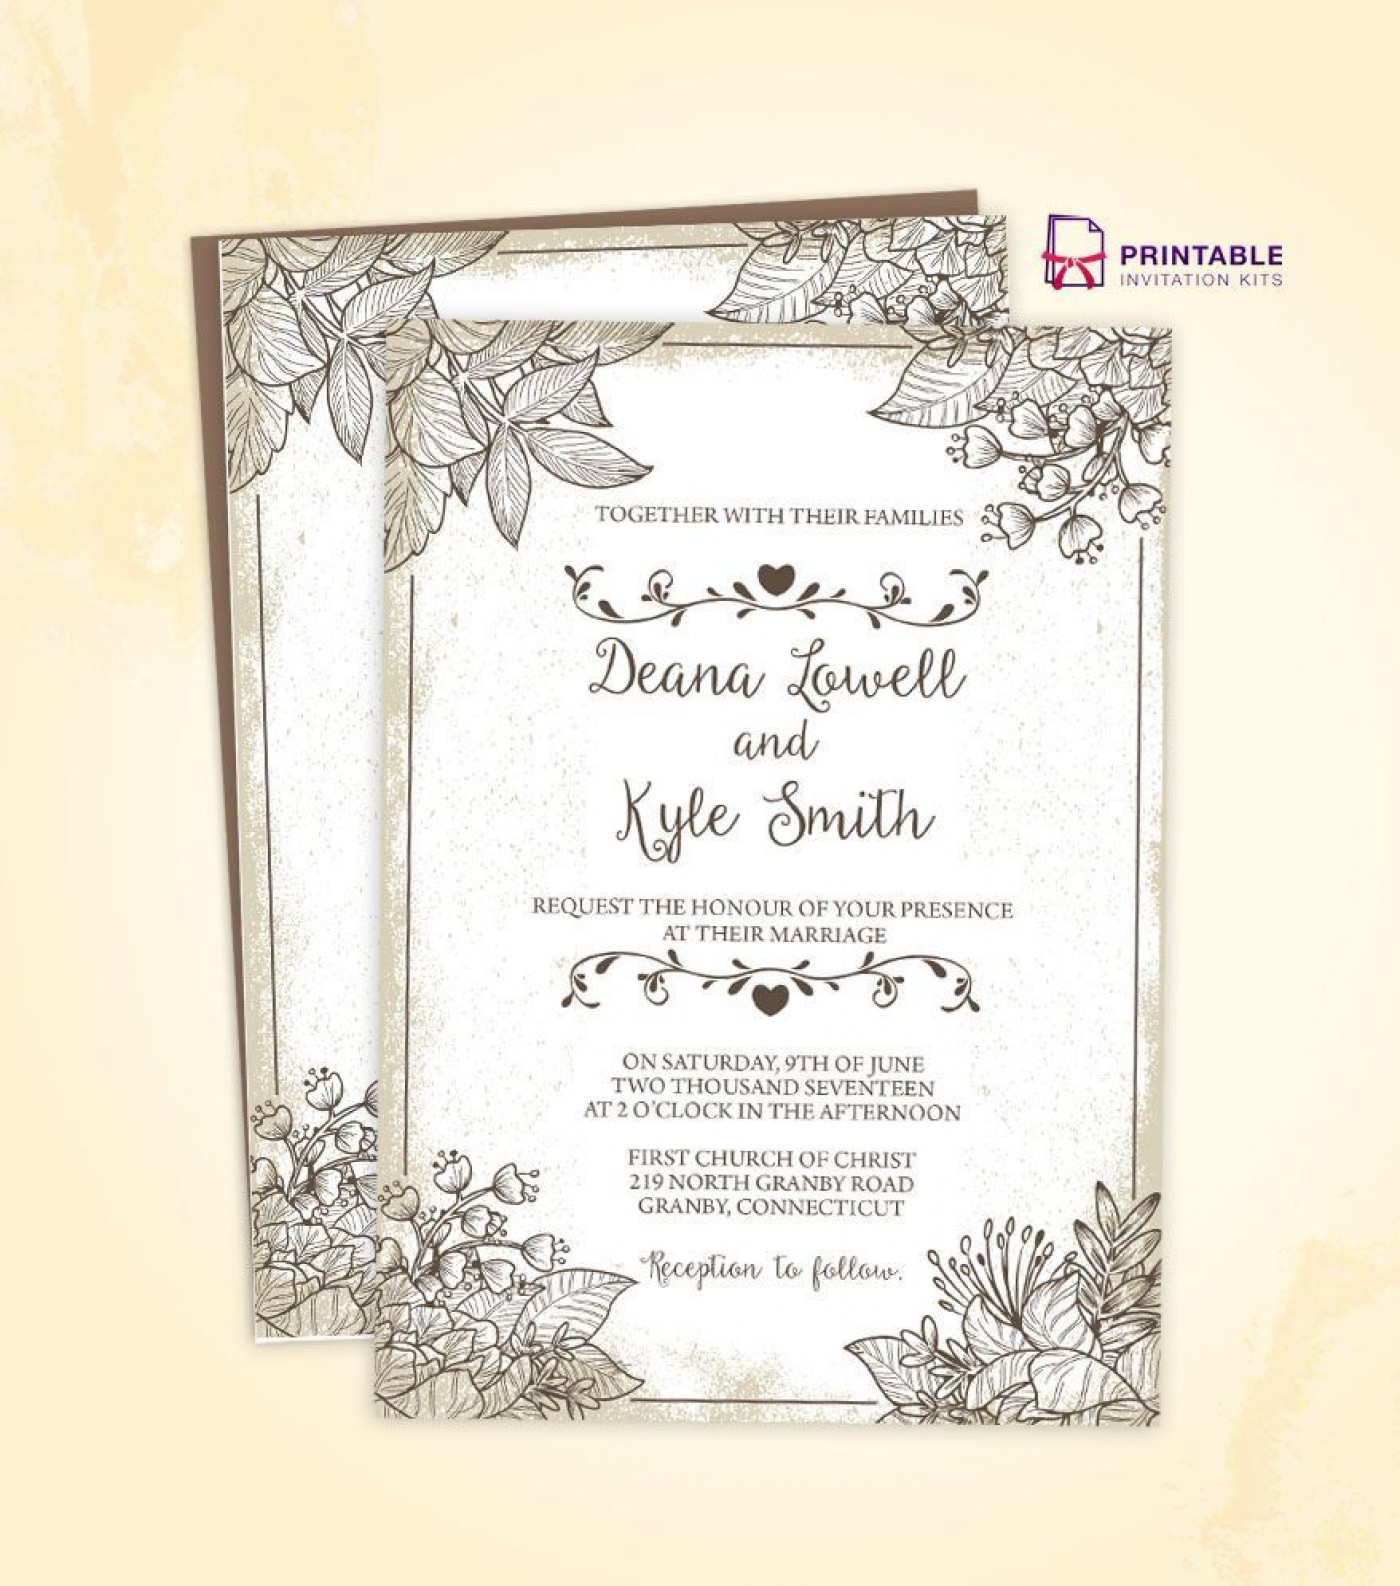 002 Staggering Free Download Wedding Invitation Template For Word Photo  Indian Microsoft1400